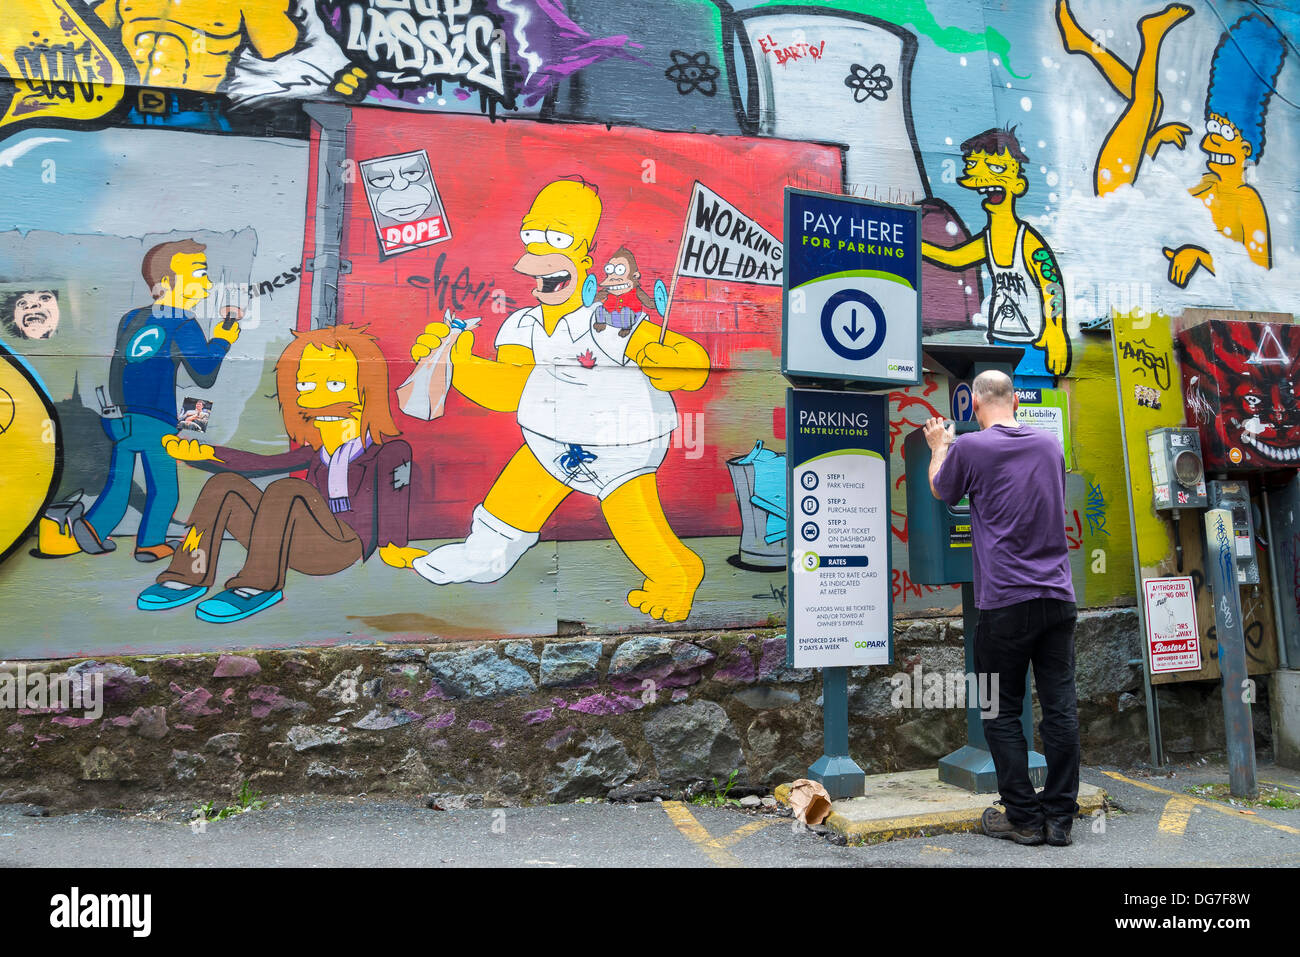 Man purchases parking at lot with Simpsons themed , graffiti style mural, DTES, Vancouver, Britsih Columbia, Canada - Stock Image